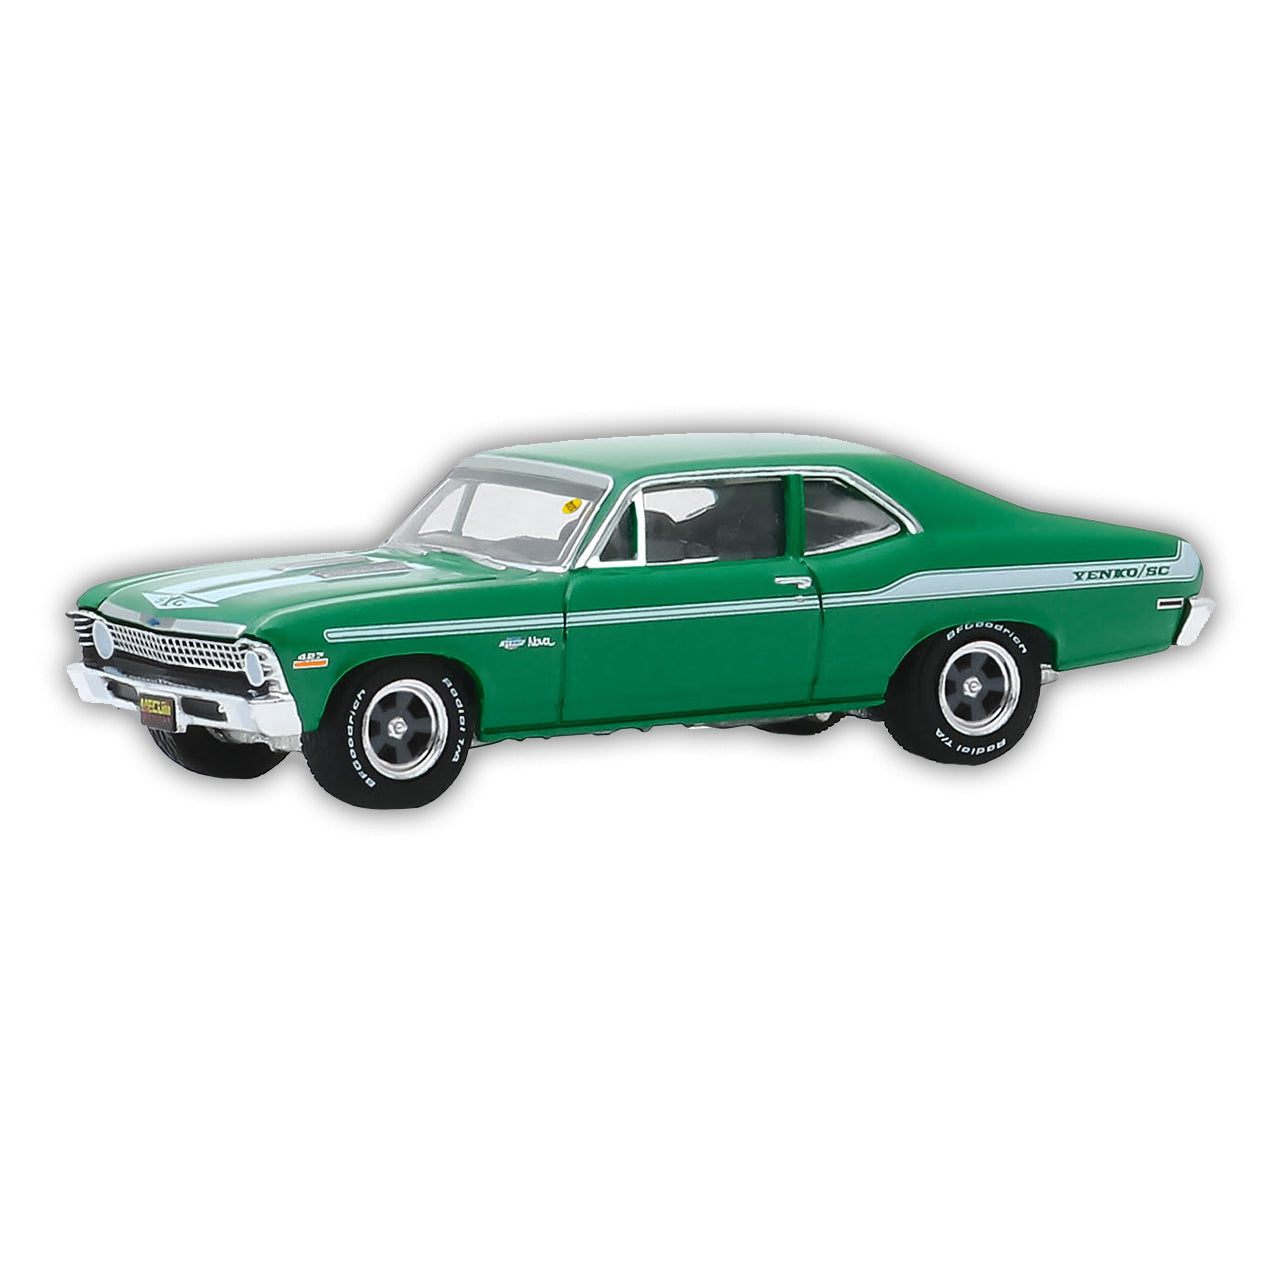 Chevy Nova Diecast Car